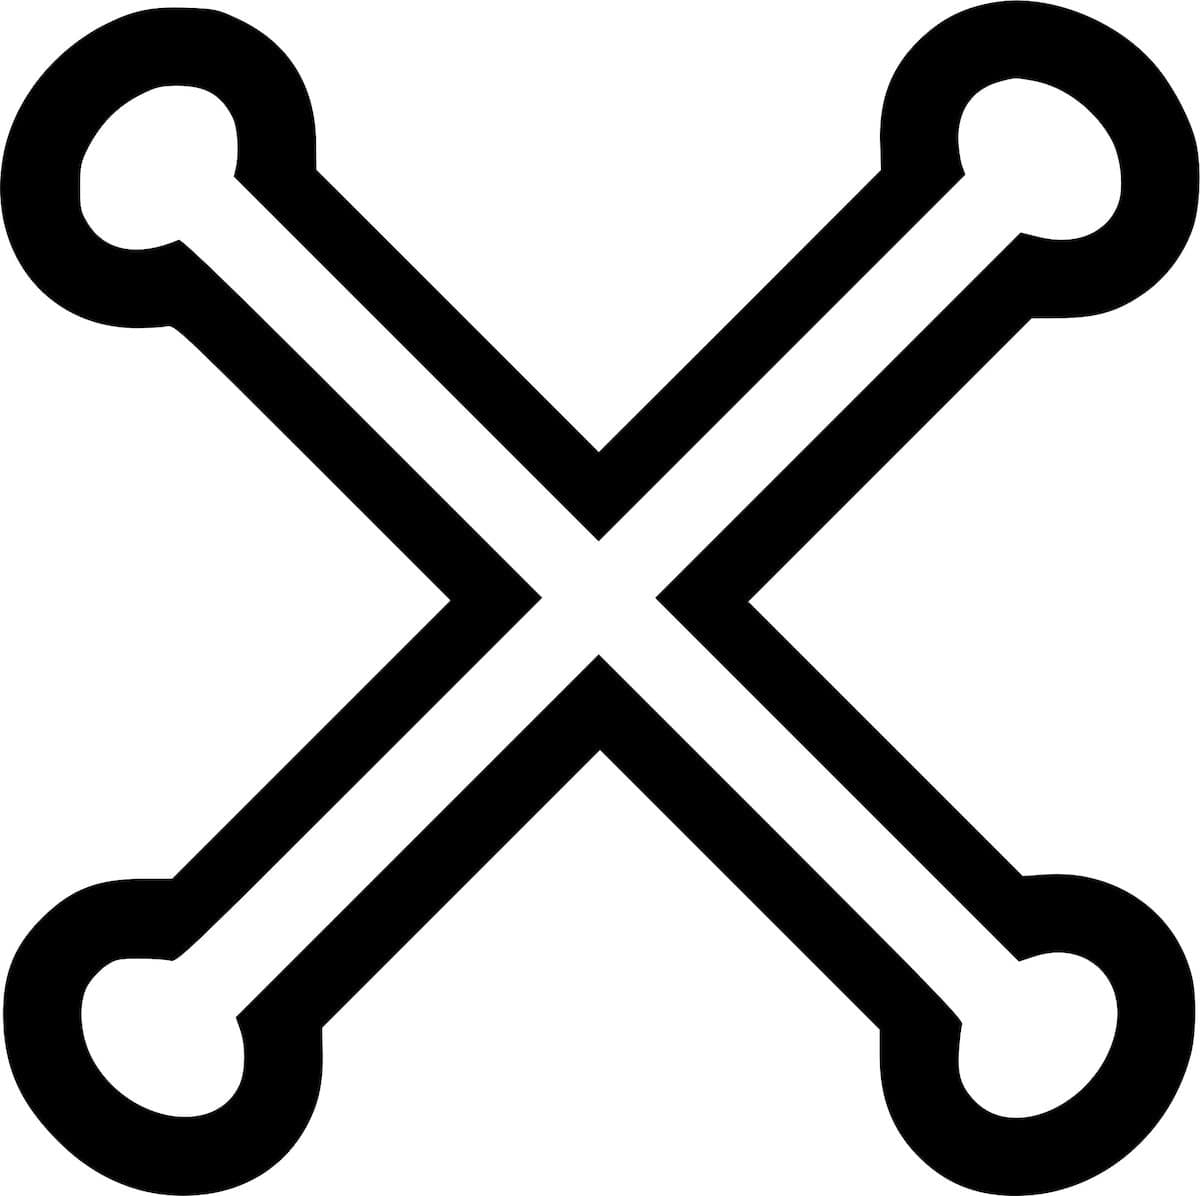 List Of Adinkra Symbols And Their Meaning In Ghana Yen